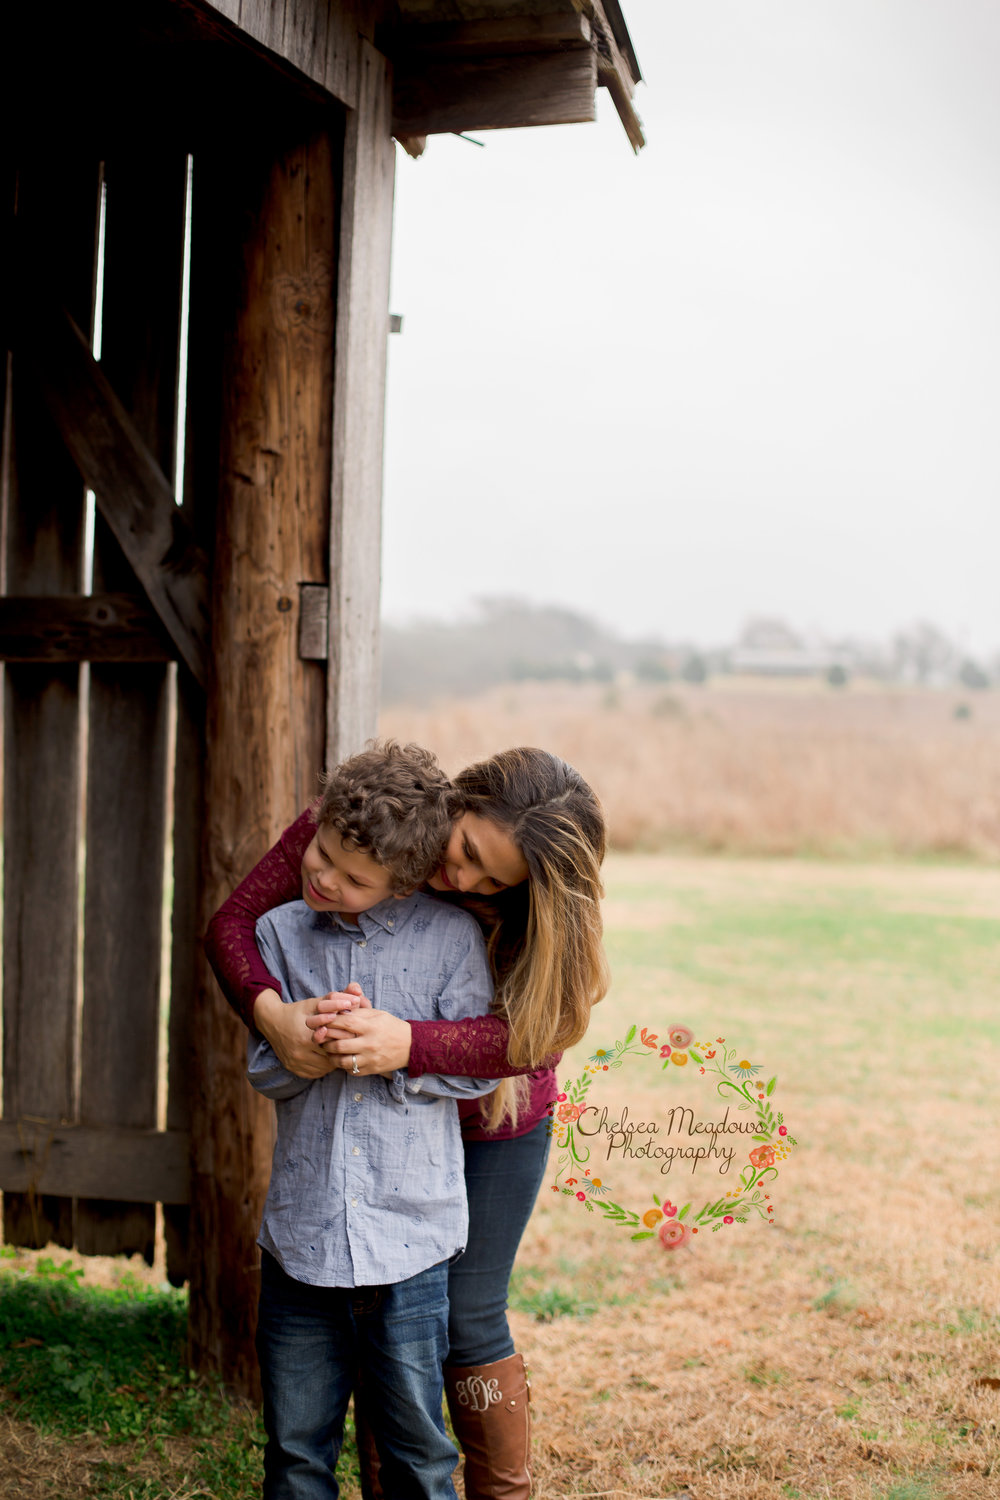 Jessica and Family Maternity Session - Nashville Maternity Photographer - Chelsea Meadows Photography (38).jpg